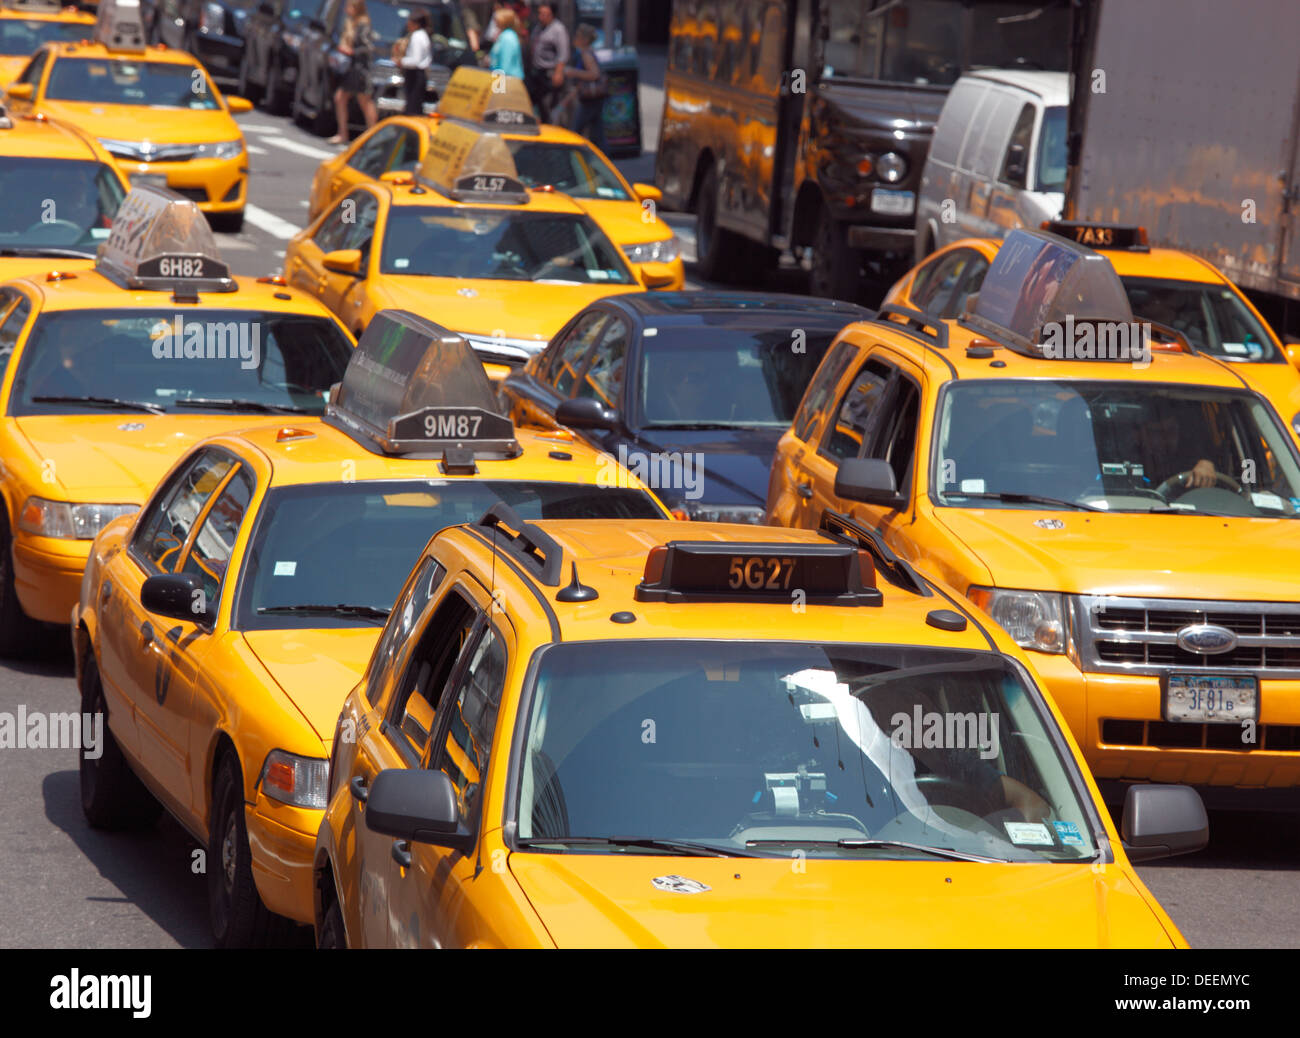 Taxi cabs in New York City, USA. - Stock Image